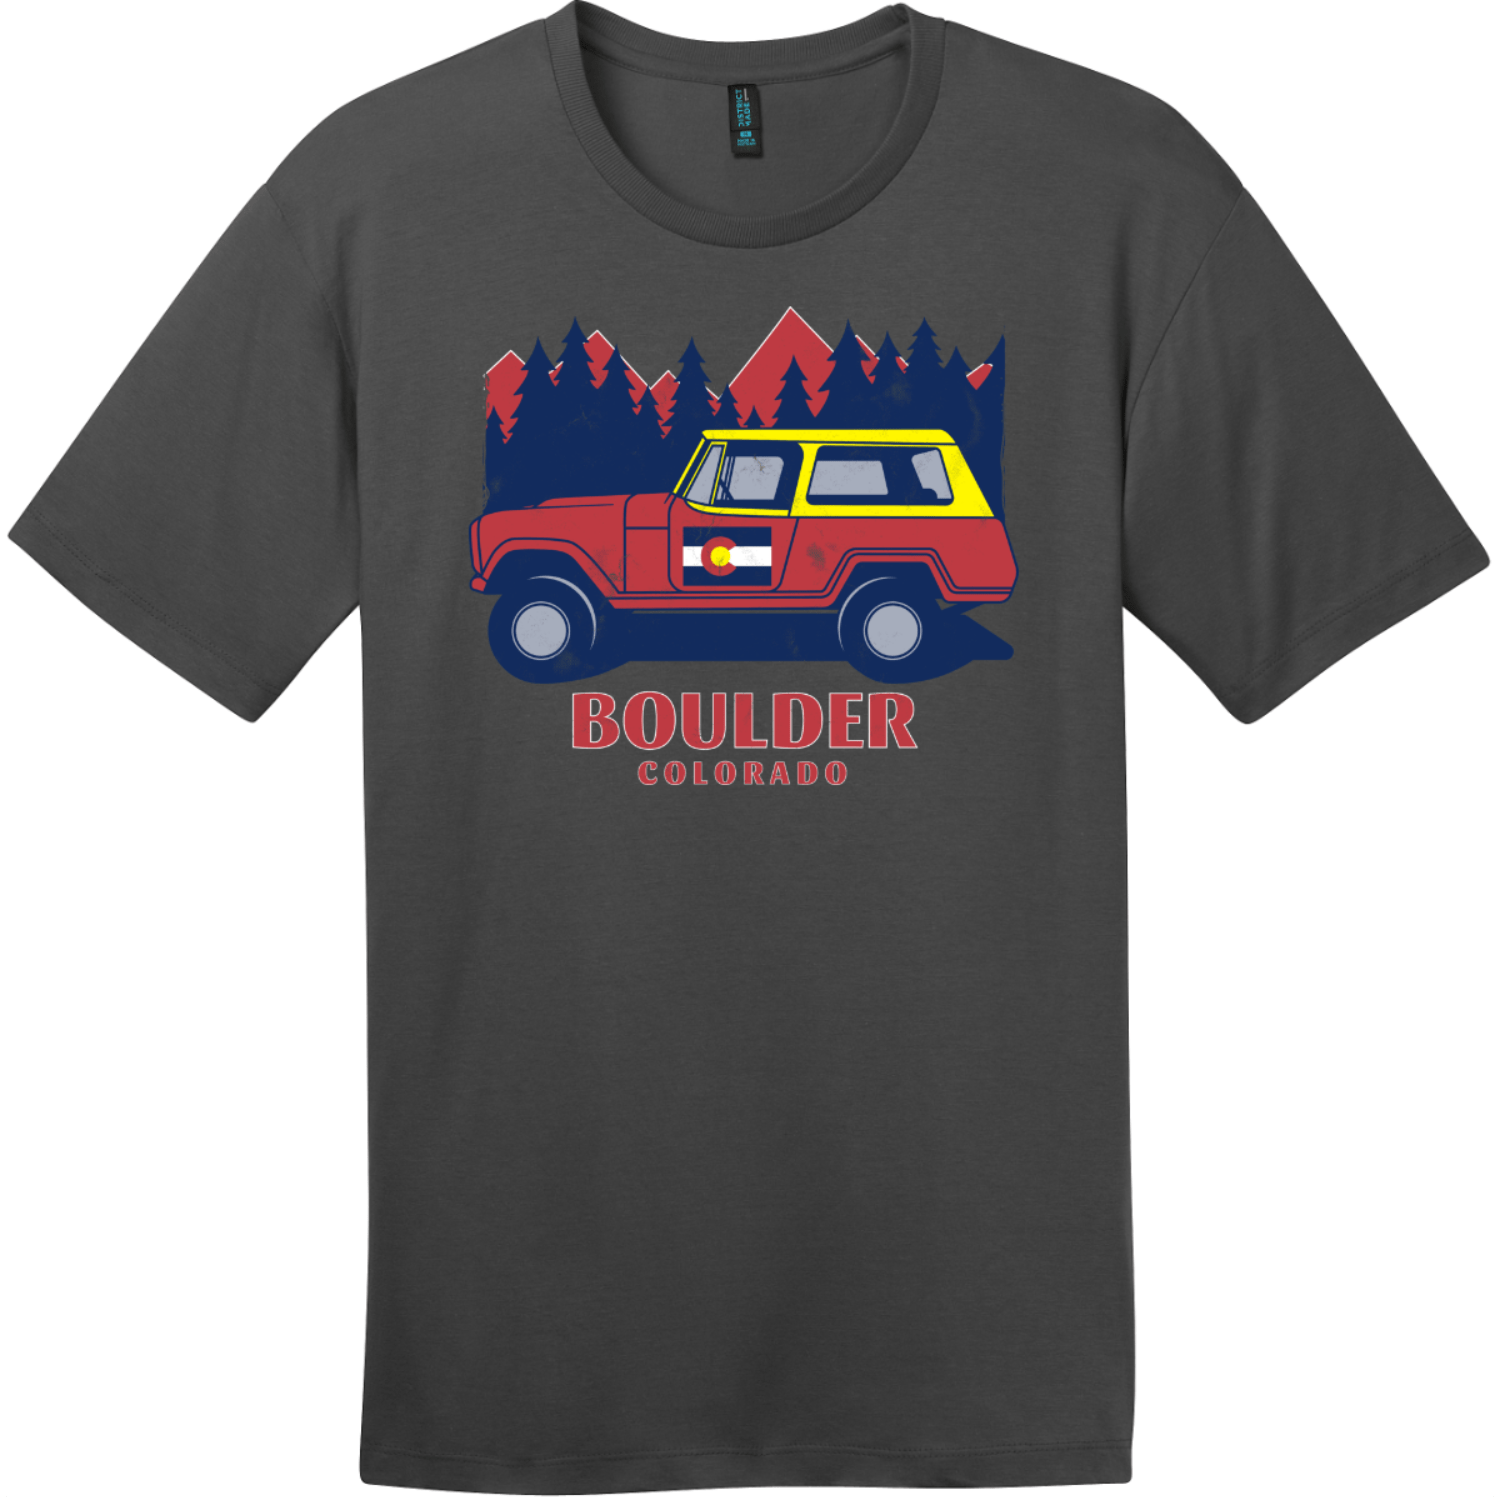 Boulder Colorado Vintage T Shirt Charcoal District Perfect Weight Tee DT104